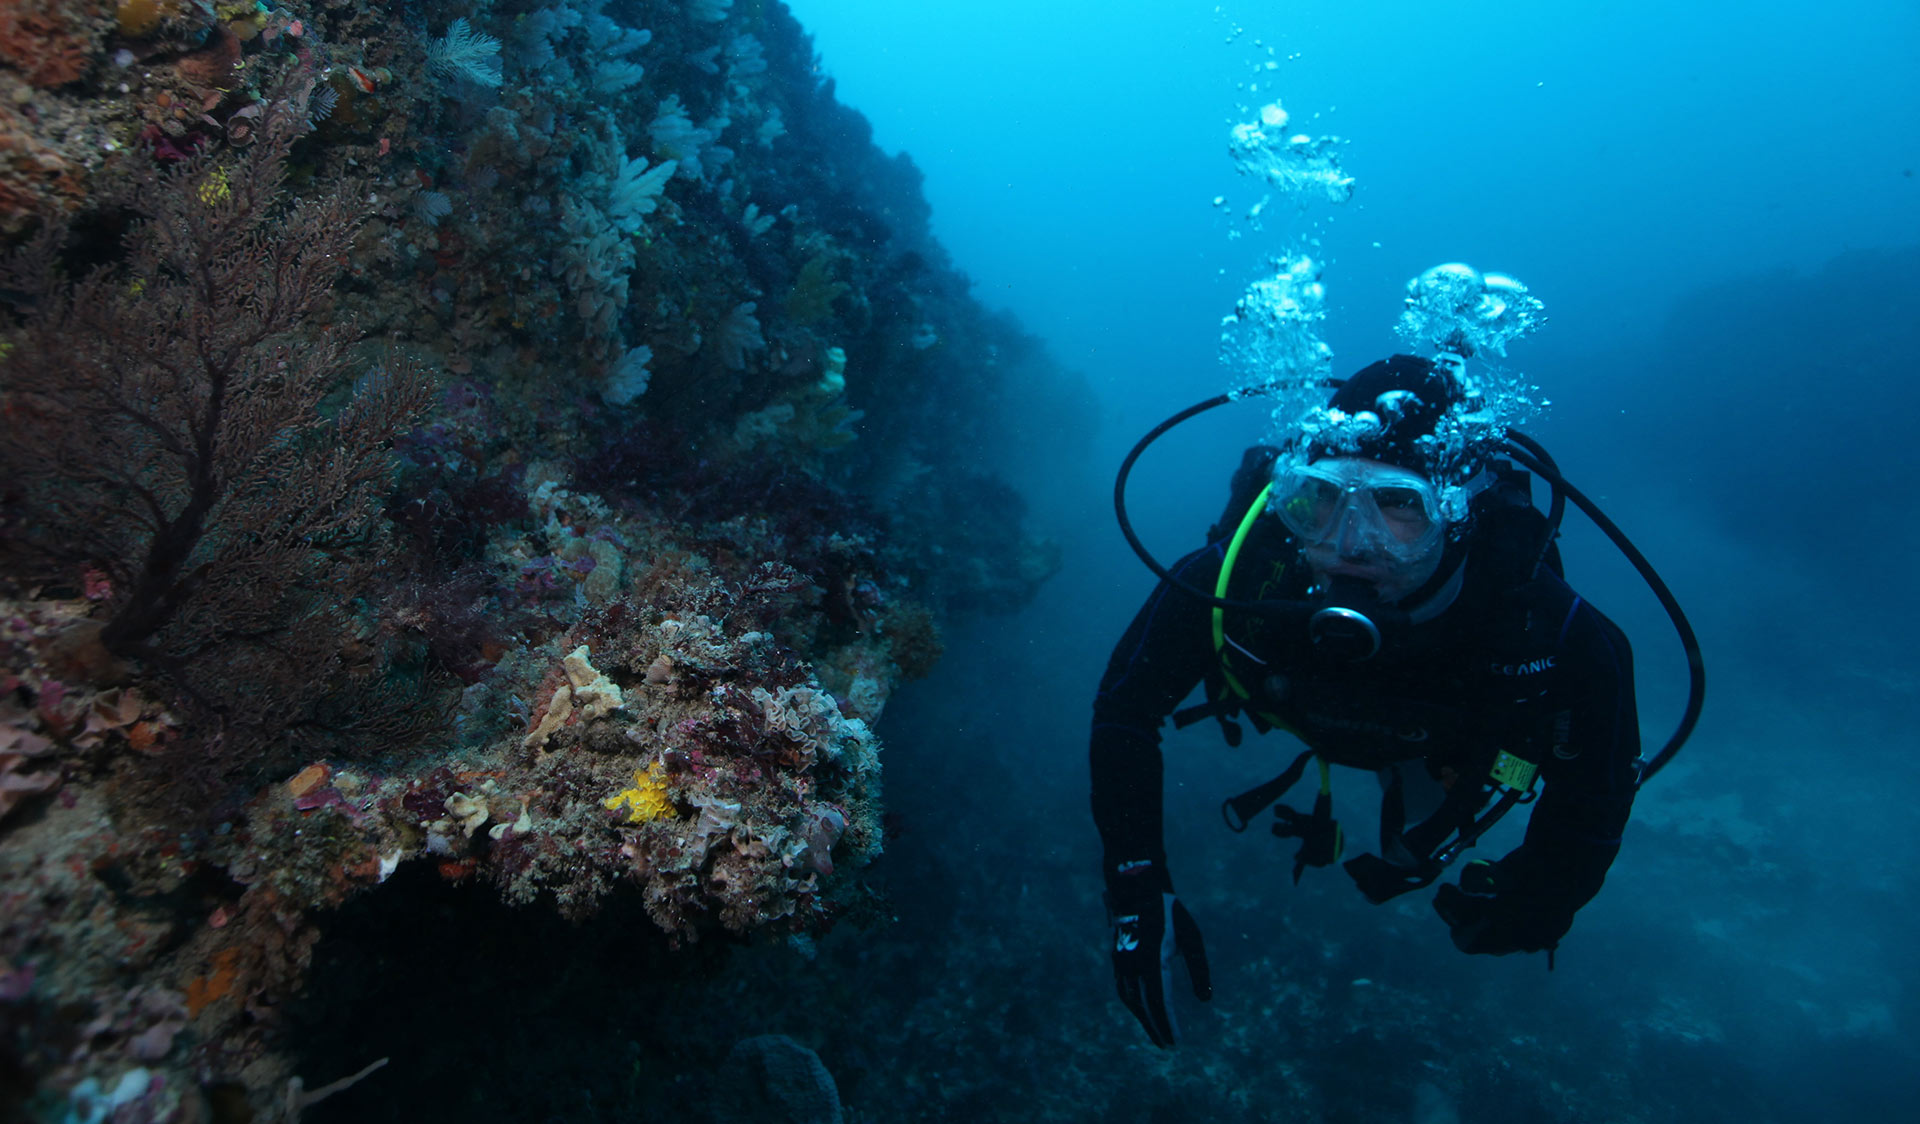 A diver explores a coral reef in the Twelve Apostles Marine National Park.